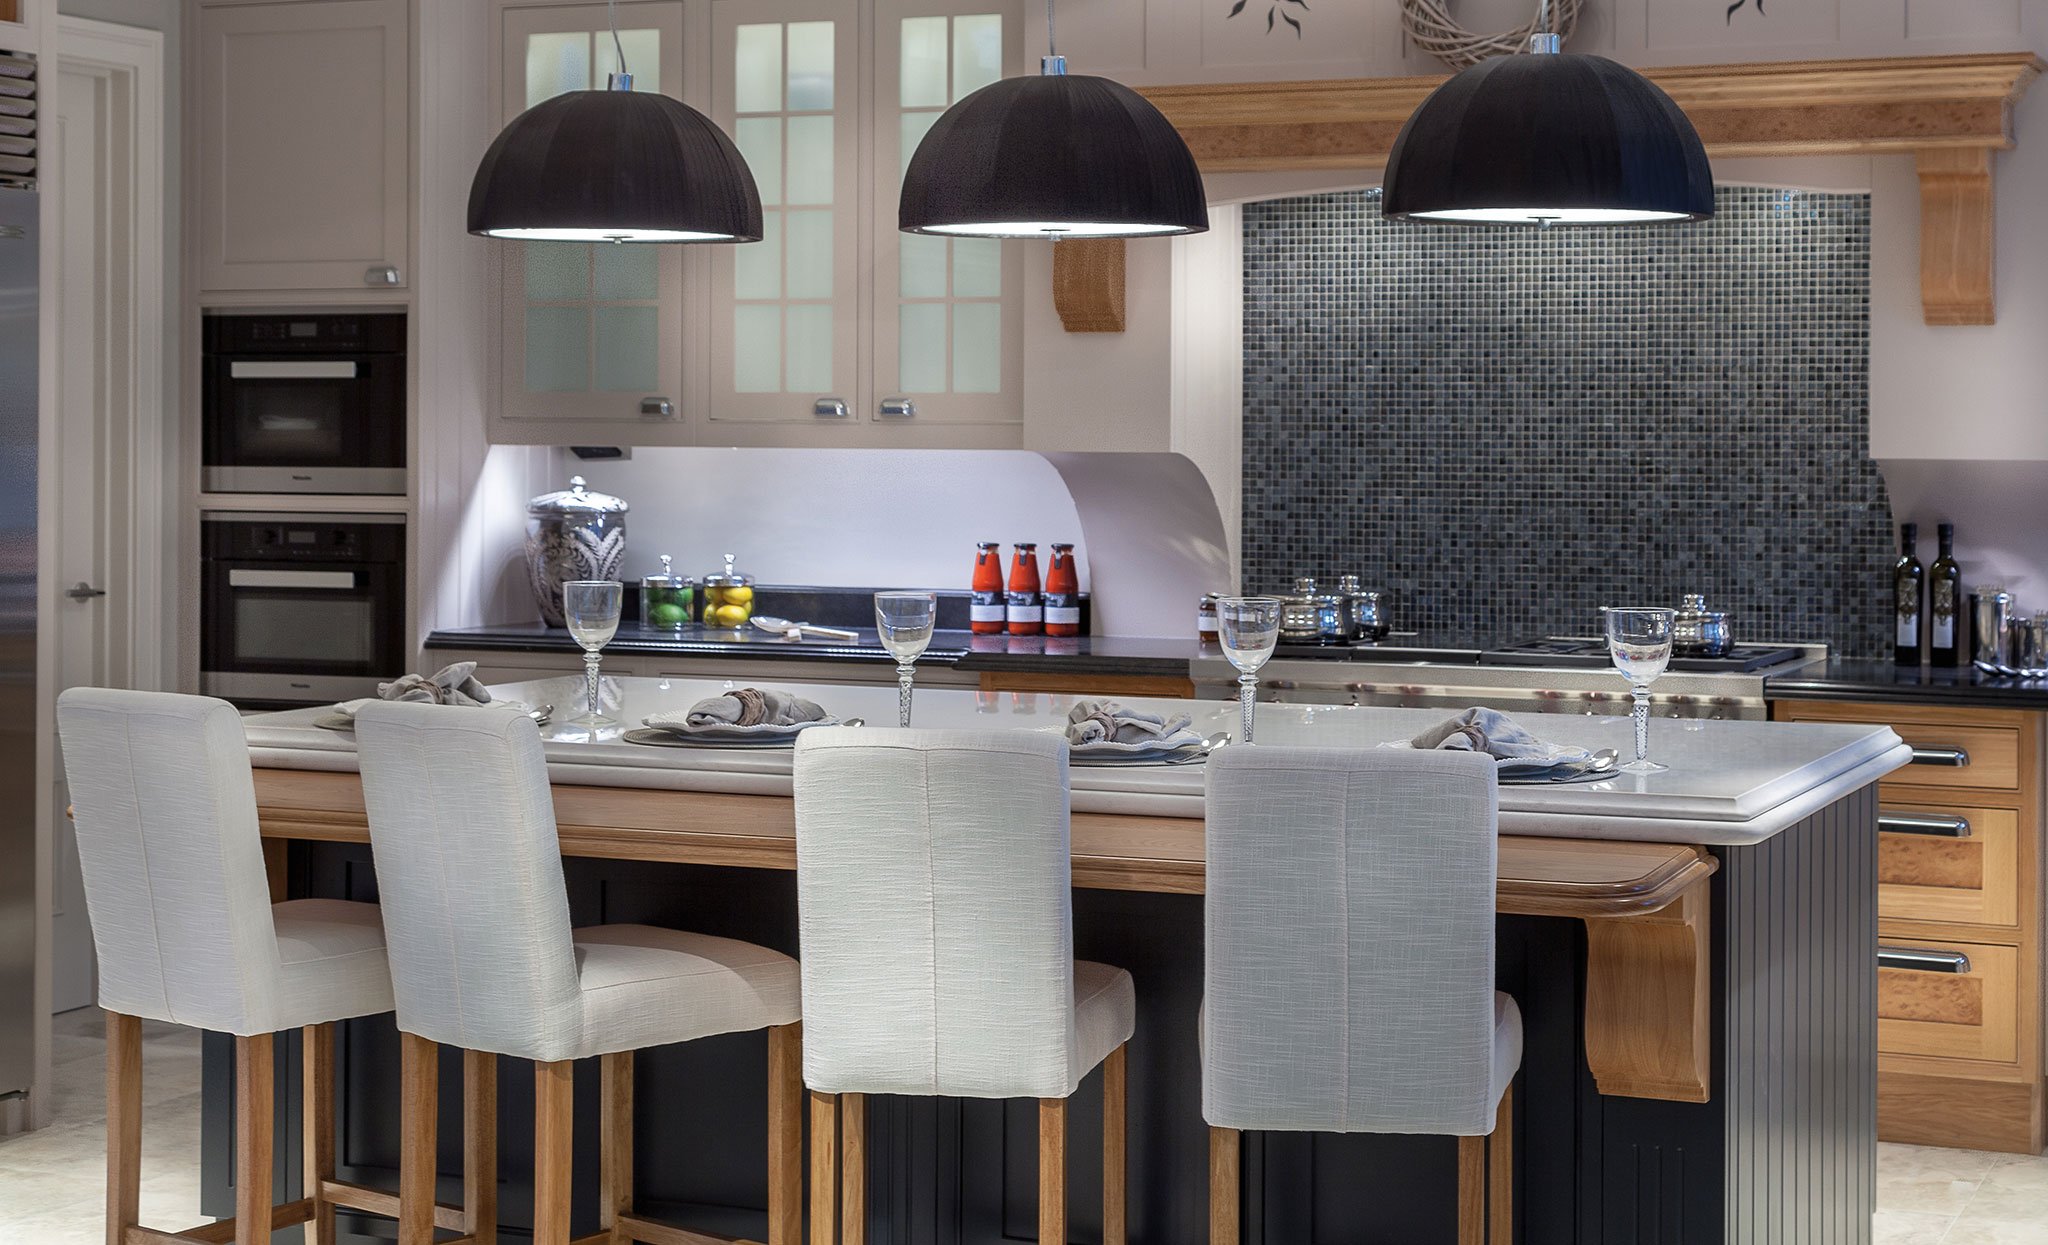 In The Sub Zero And Wolf Kitchen Design Contest Evesley House Won Gold At The Prestigious London Evening Standard Awards For Best Luxury Development